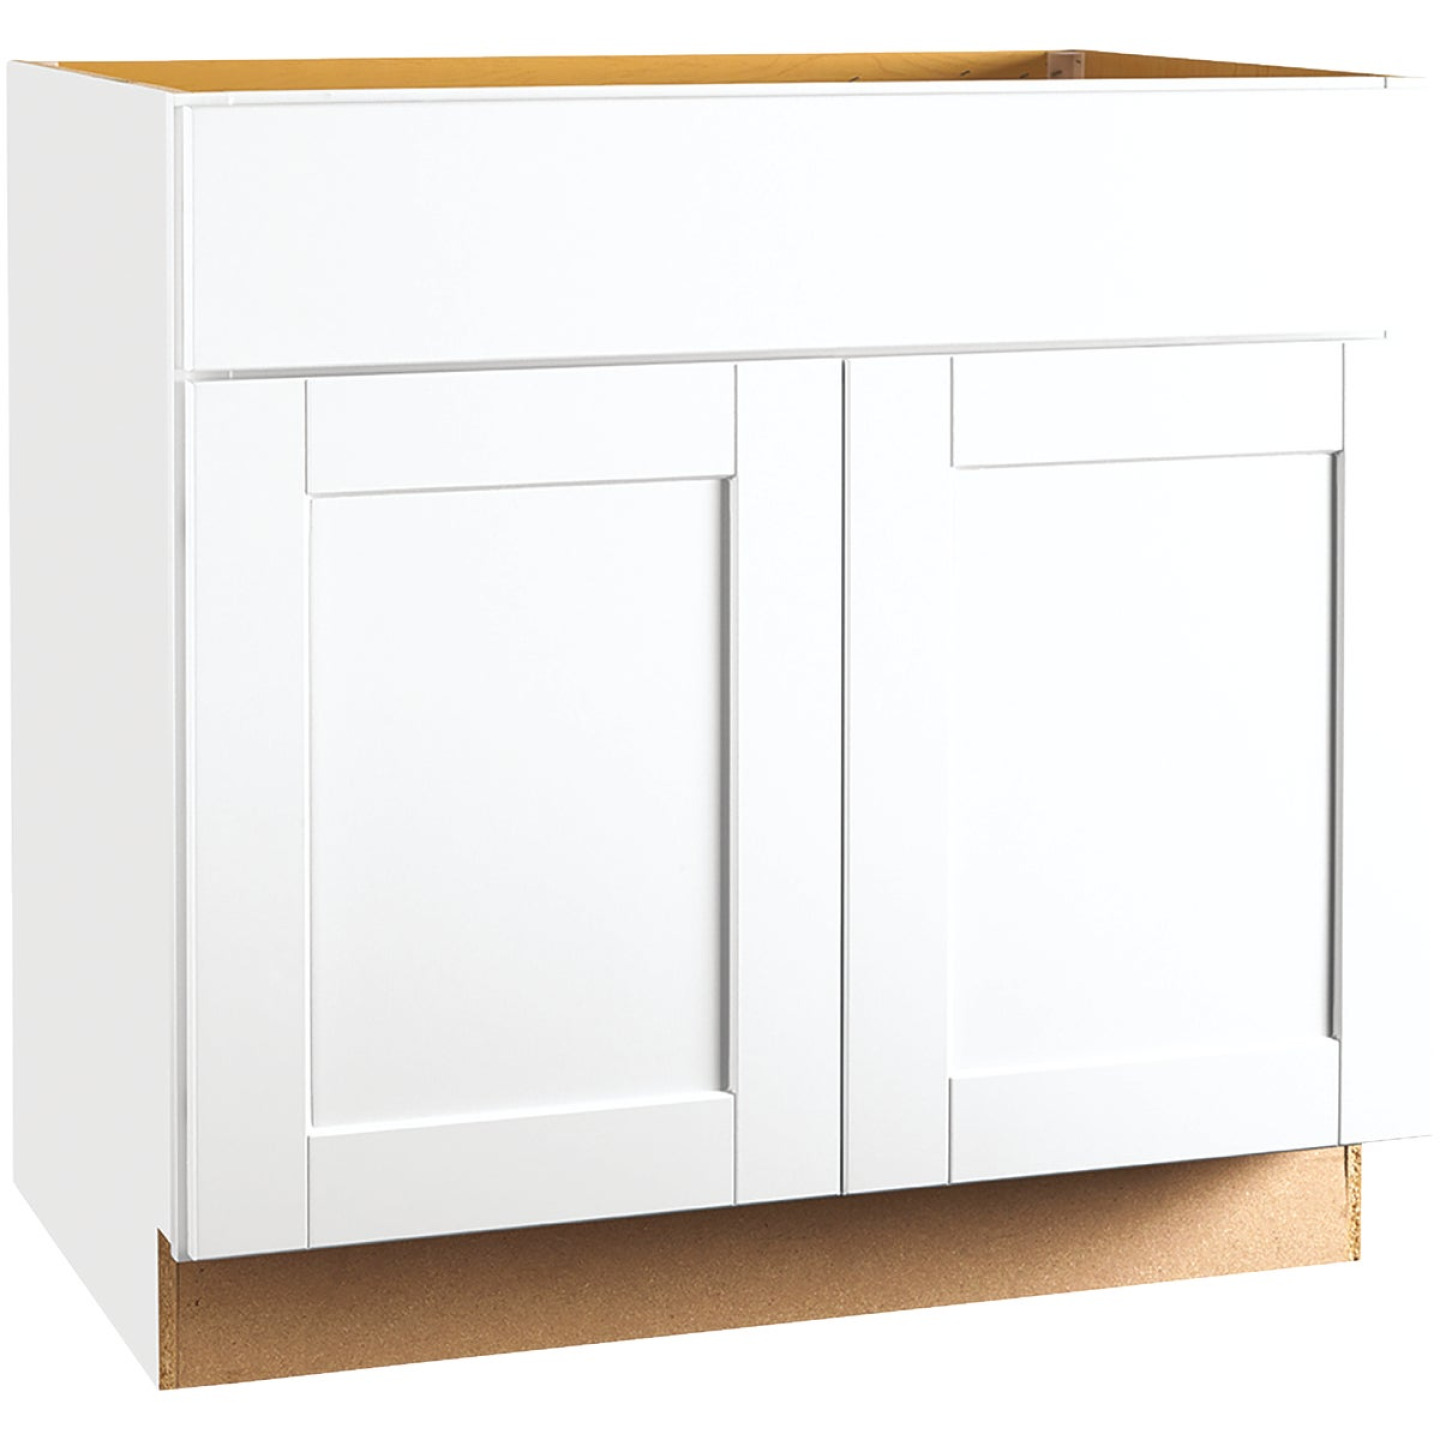 Continental Cabinets Andover Shaker 36 In. W x 34 In. H x 24 In. D White Thermofoil Base Kitchen Cabinet Image 1